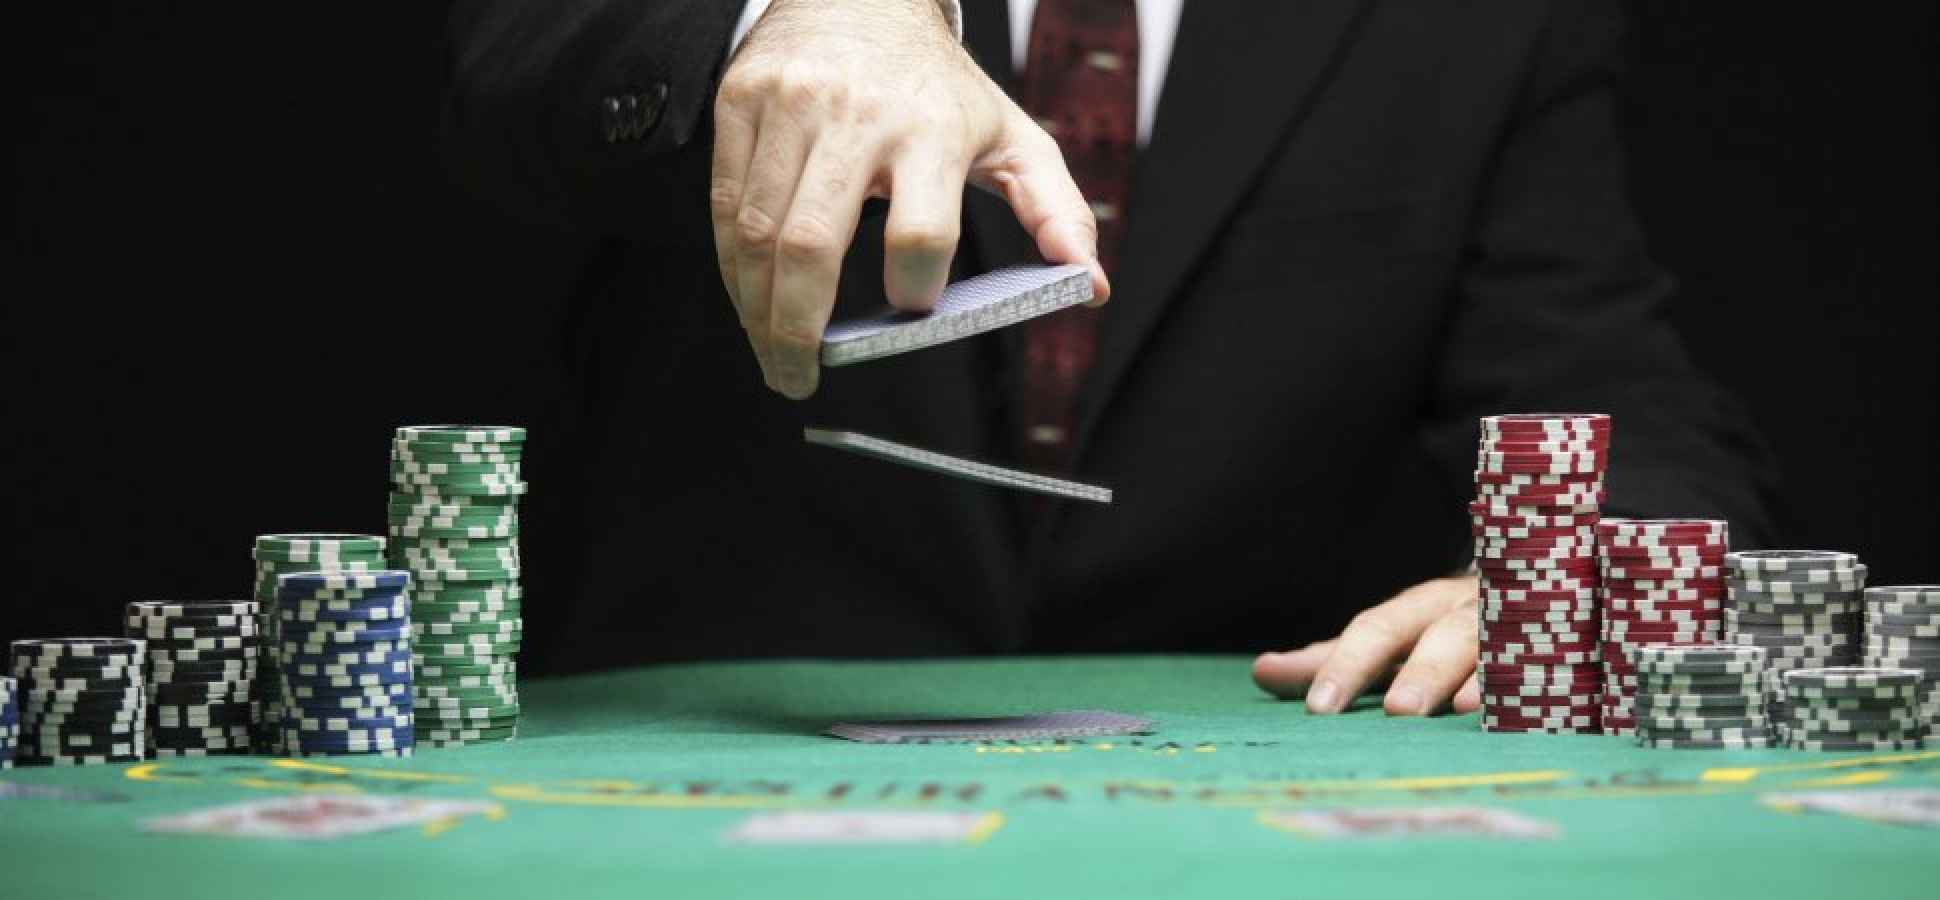 How to take casino poker notes the best gambling sites